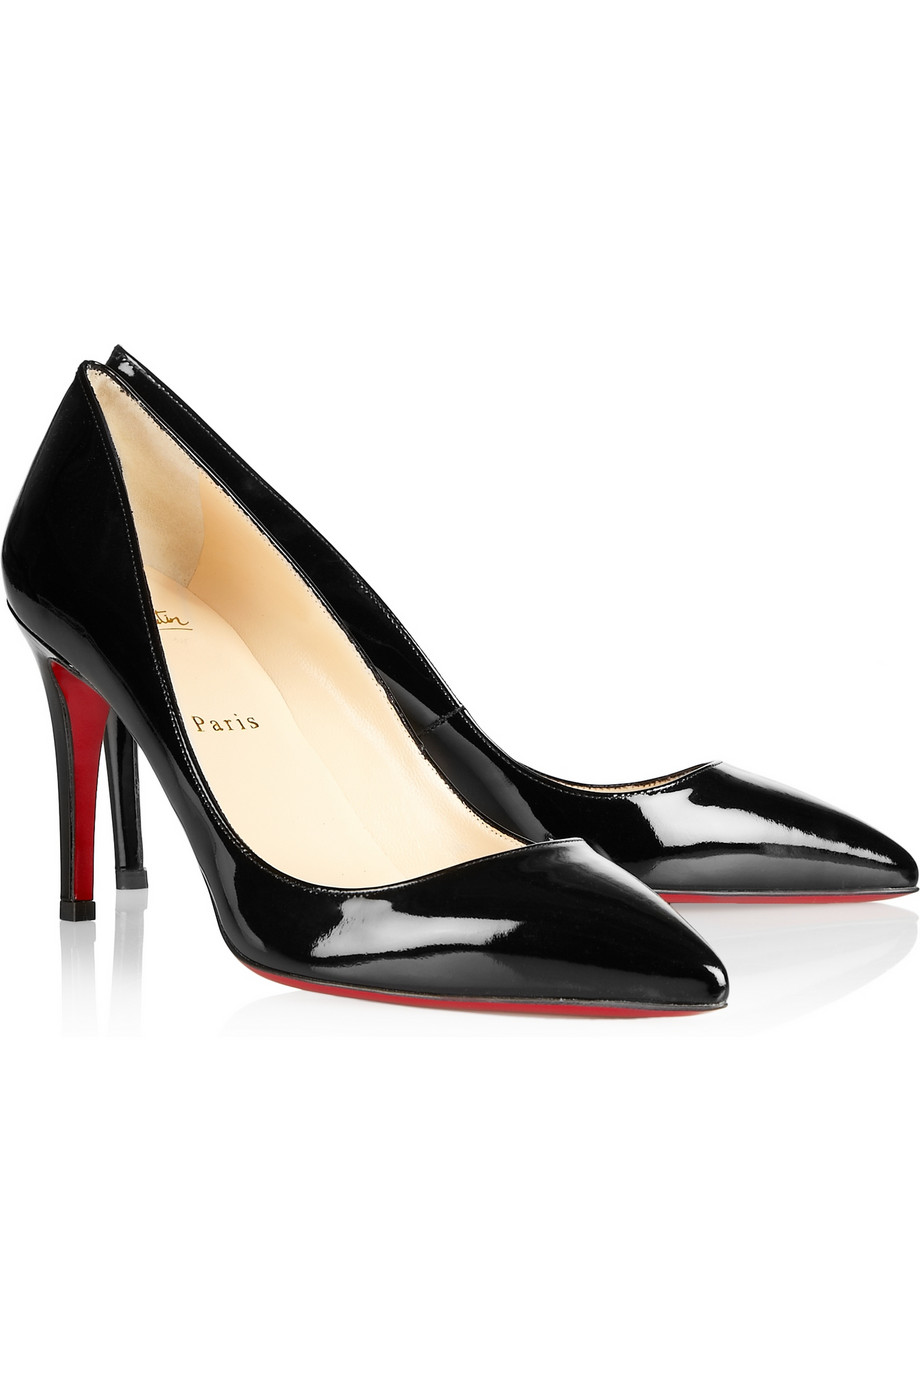 San Francisco 753c4 489d2 Christian Louboutin The Pigalle 85 Patentleather Pumps in ...